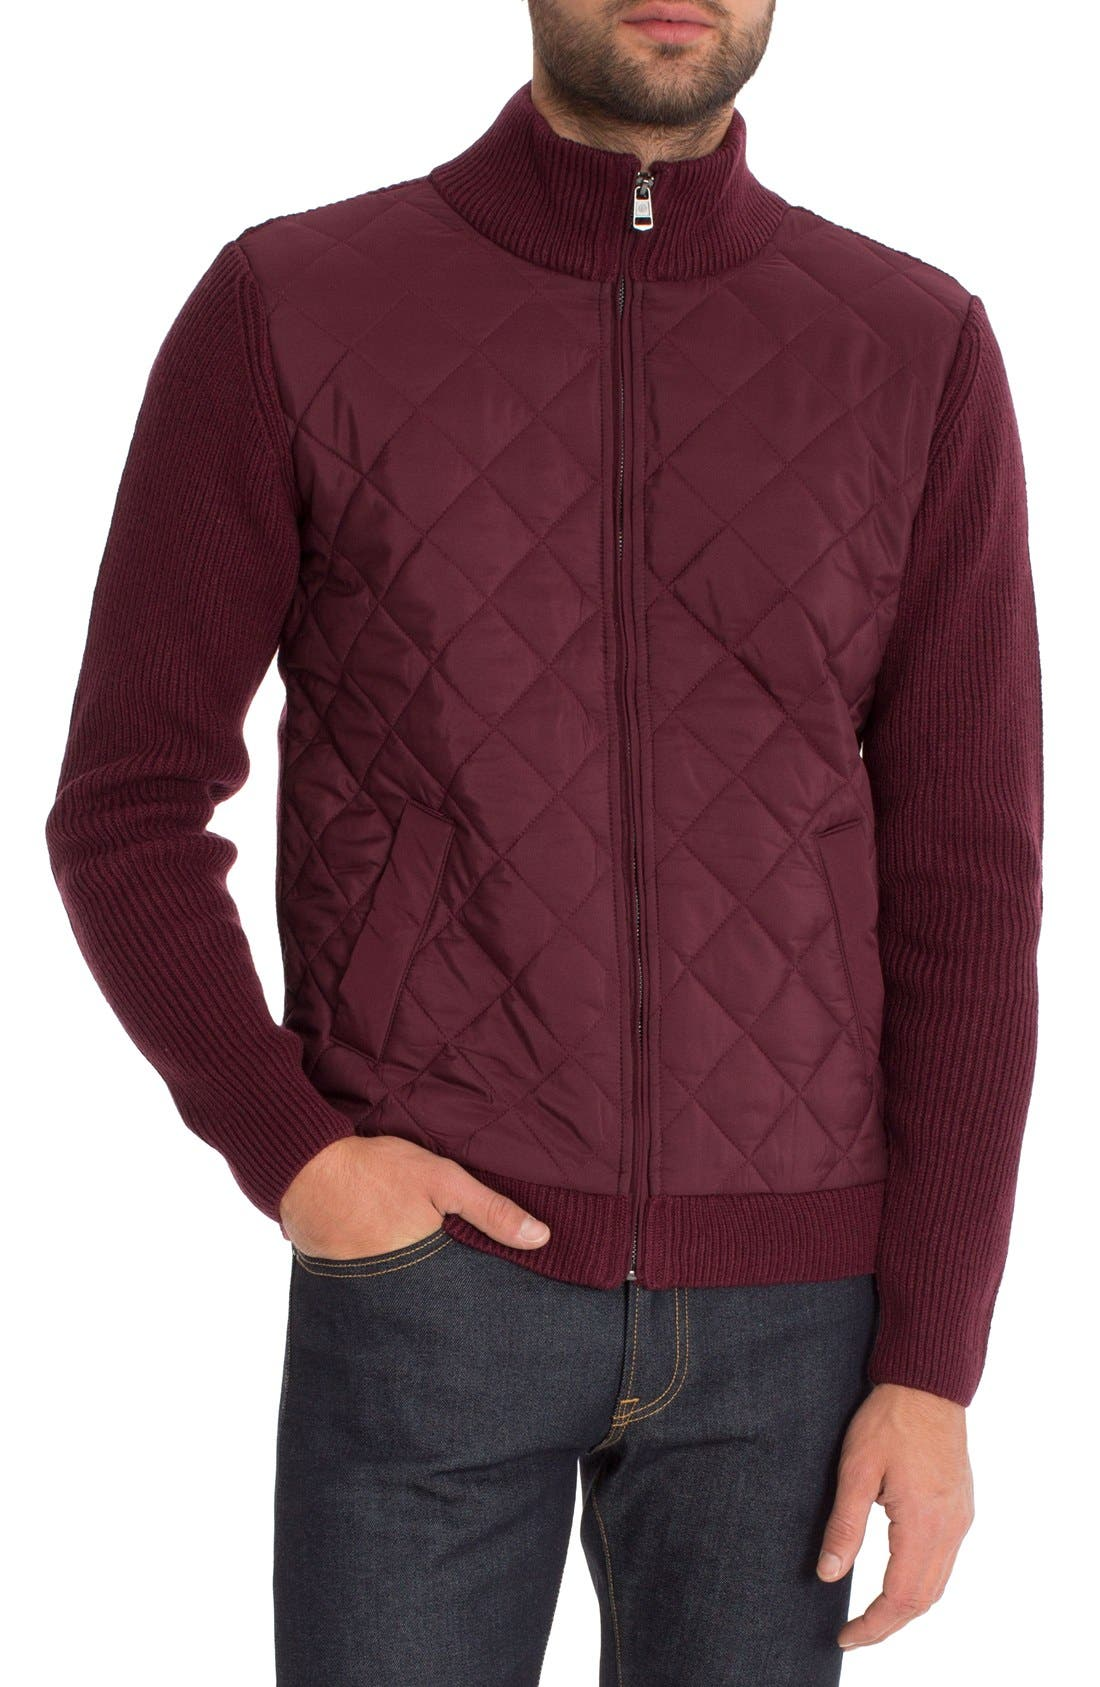 'Gatti' Quilted Panel Lambswool Knit Jacket,                         Main,                         color, Maroon